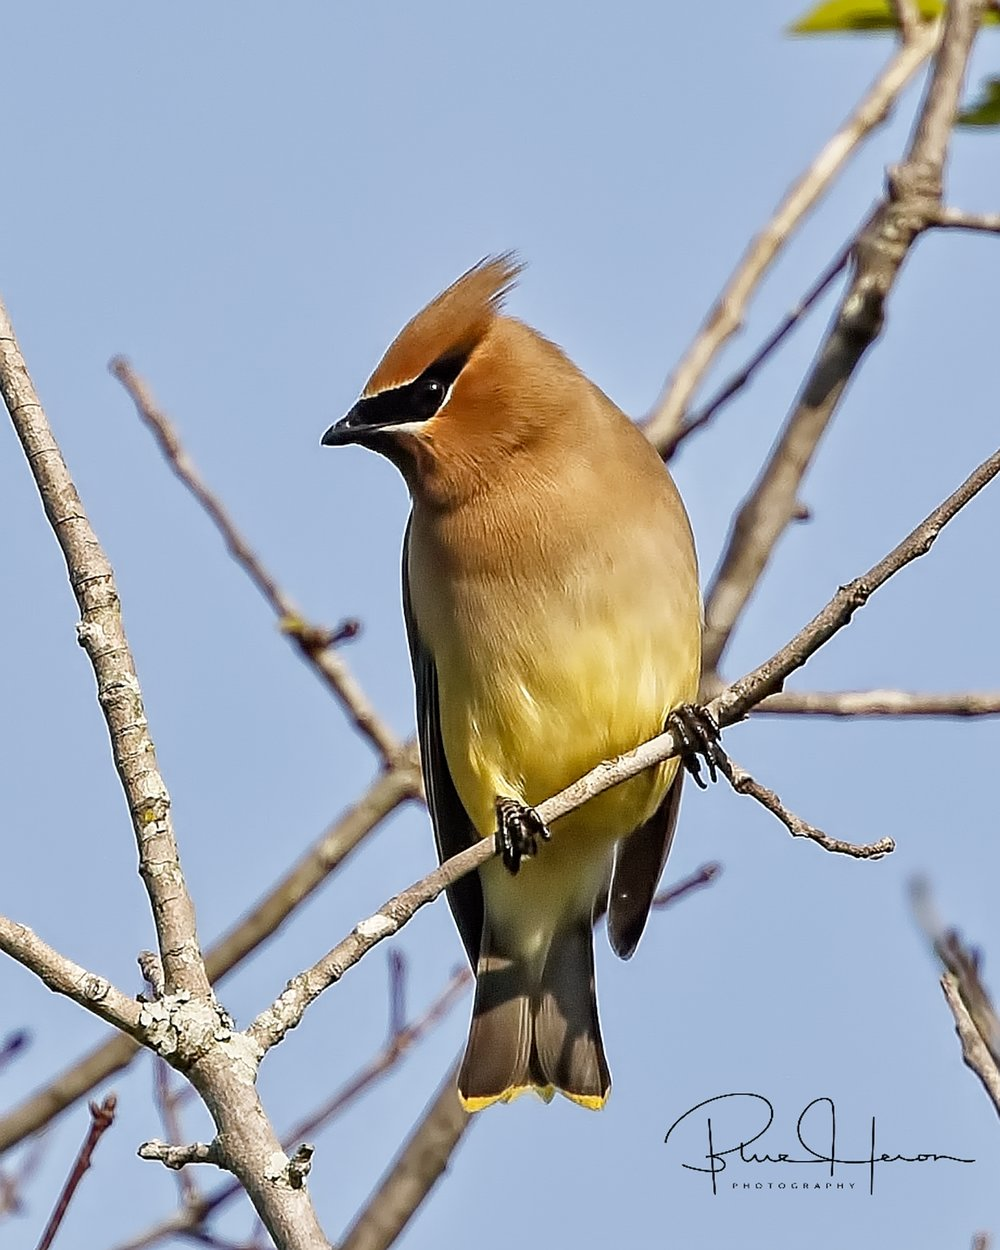 A migrating Cedar Waxwing stopped by for a snack too!